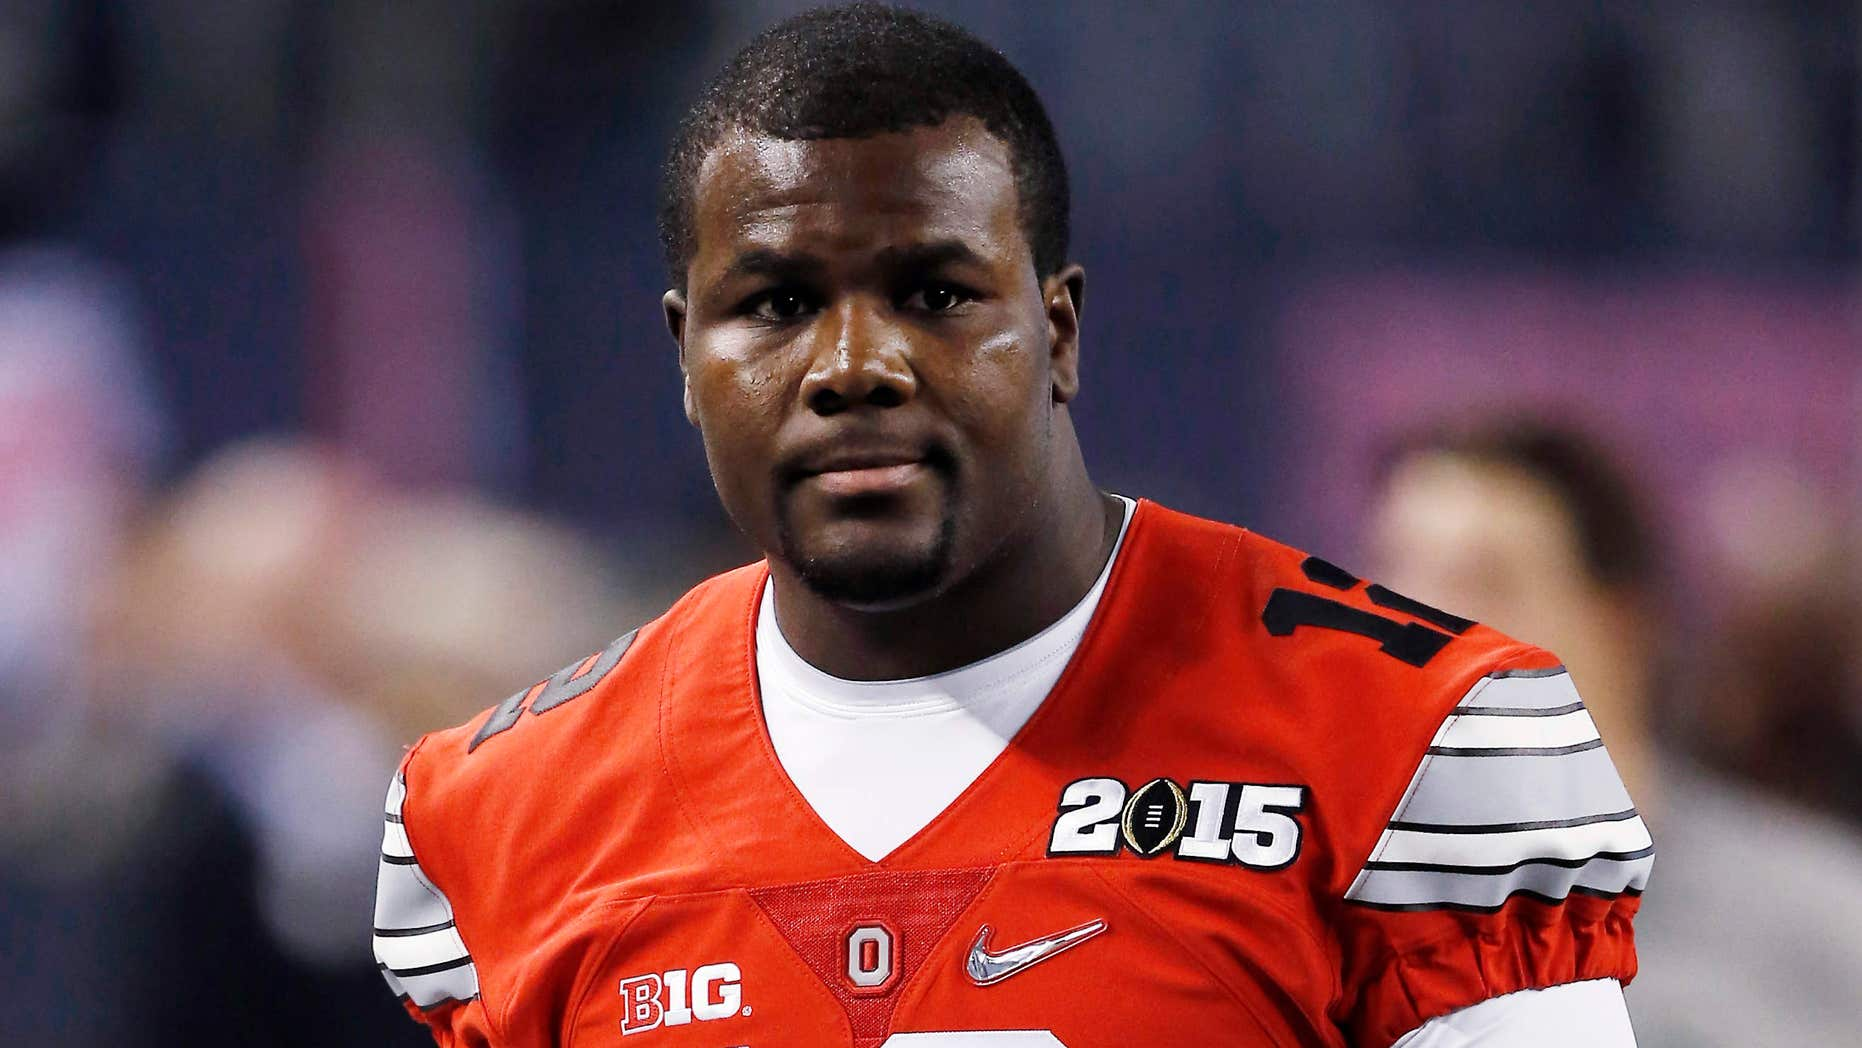 Jan. 12, 2015: Ohio State's Cardale Jones warms up for the NCAA college football playoff championship game against Oregon in Arlington, Texas.